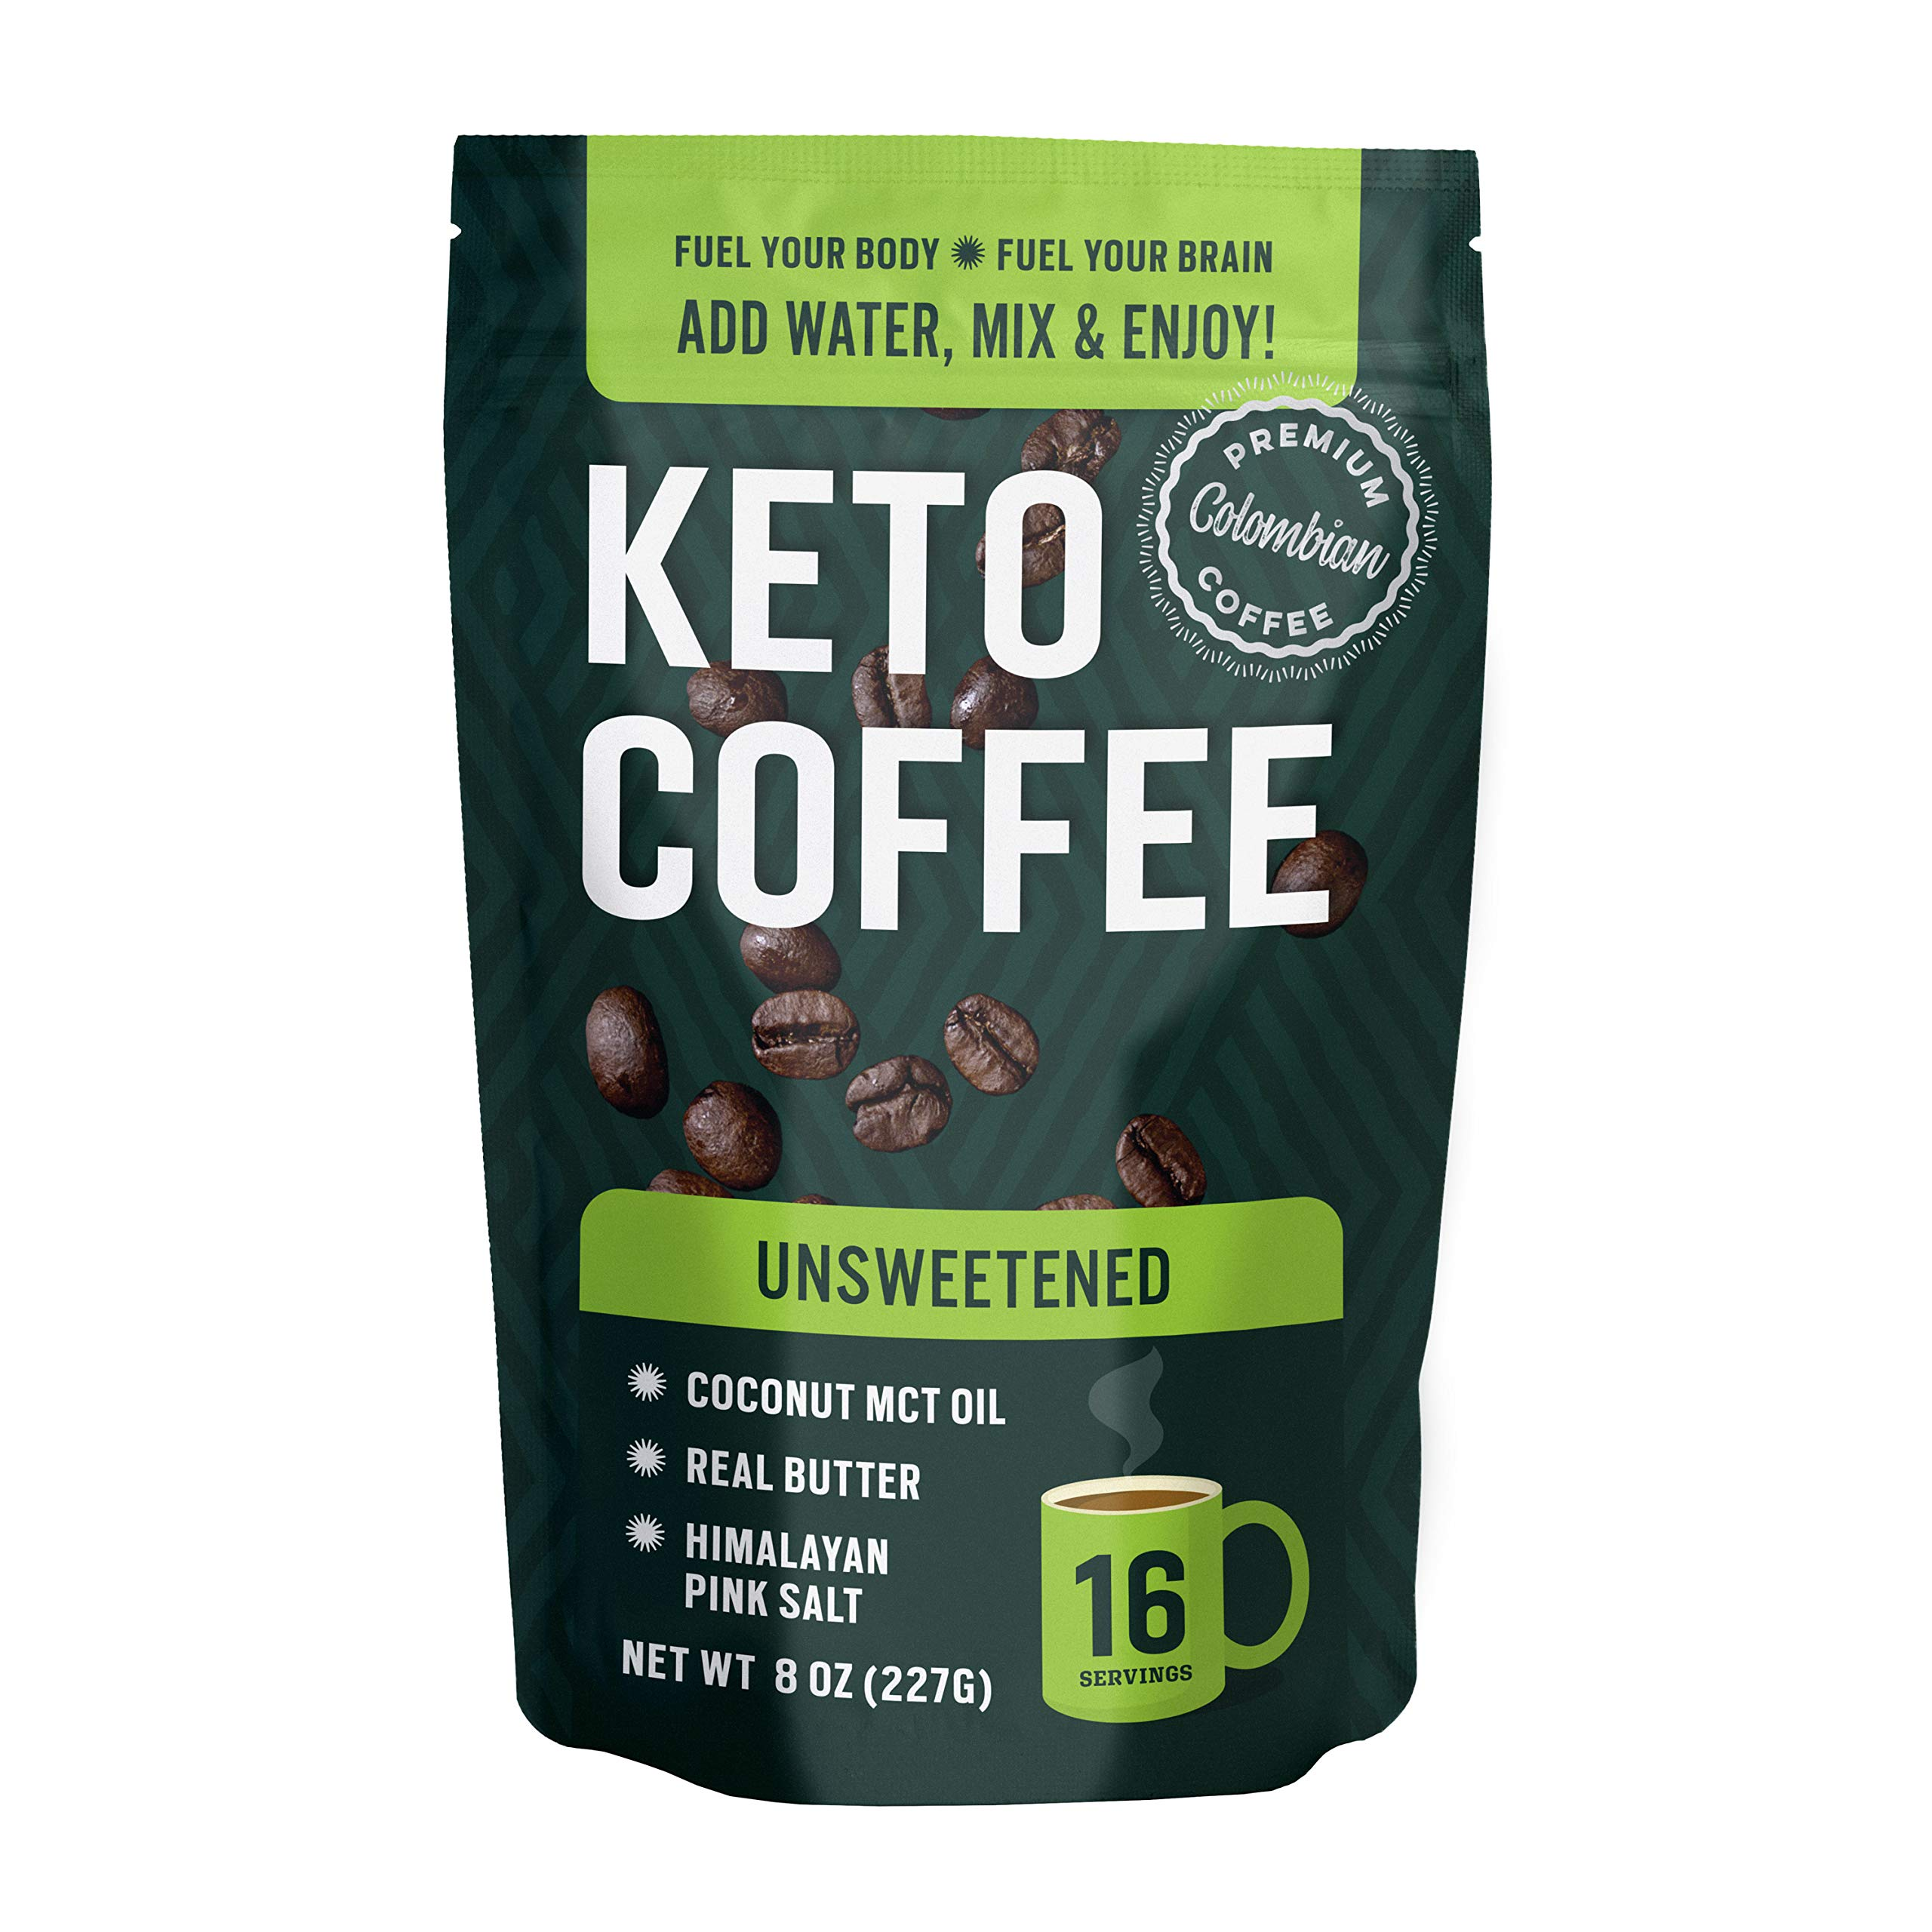 360 Nutrition Instant Keto Coffee - Just Add Water | 8 oz, Unsweetened | 16 Servings per bag | MCT Coconut Oil, Organic Grass-Fed Butter, Himalayan Sea Salt